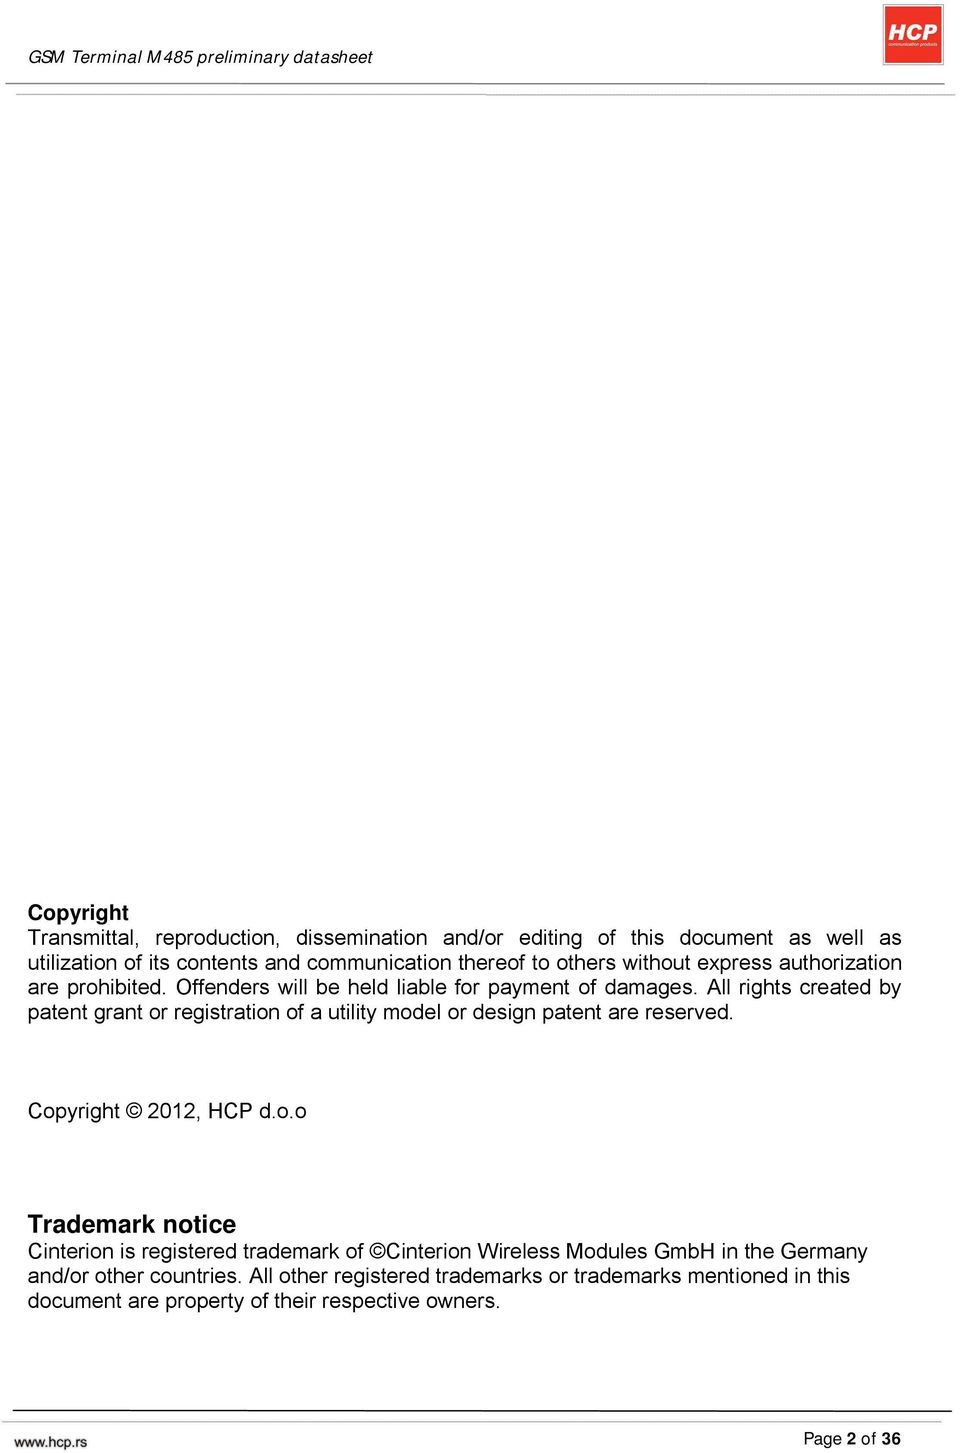 Gsm Terminal M485 Preliminary Datasheet Pdf 4541 All Rights Created By Patent Grant Or